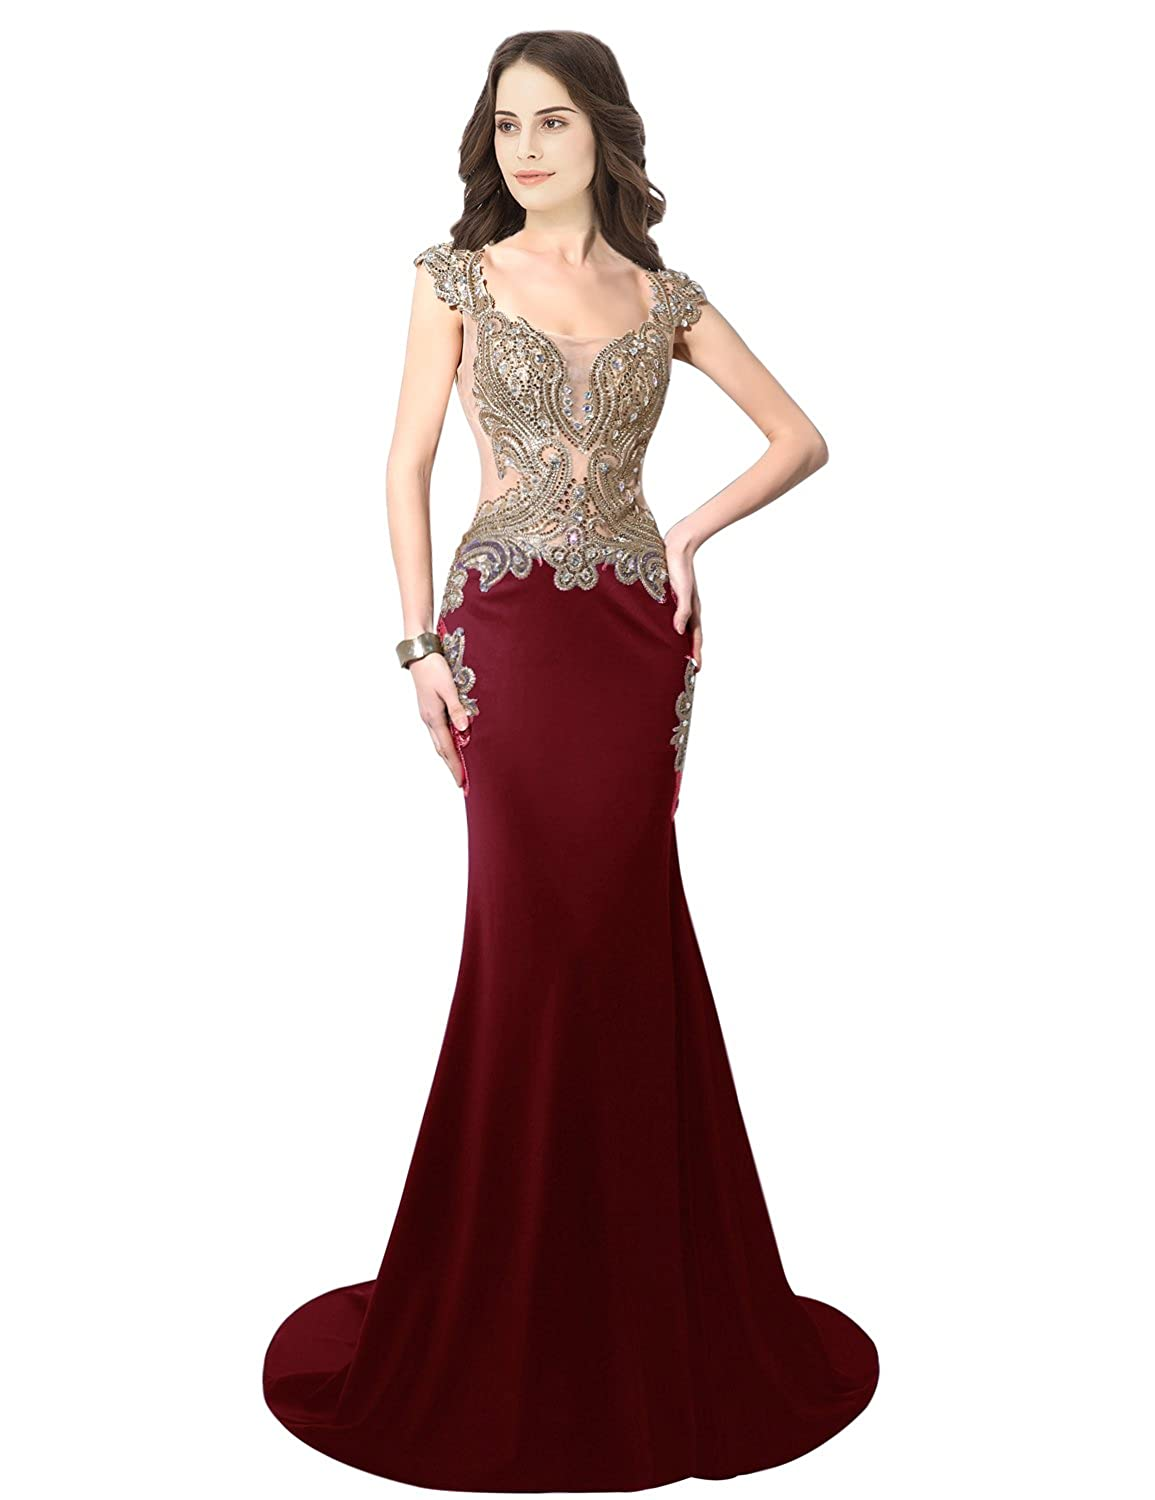 003burgundy Sarahbridal Women's Mermaid Evening Ball Dress 2019 Formal Long Prom Gowns